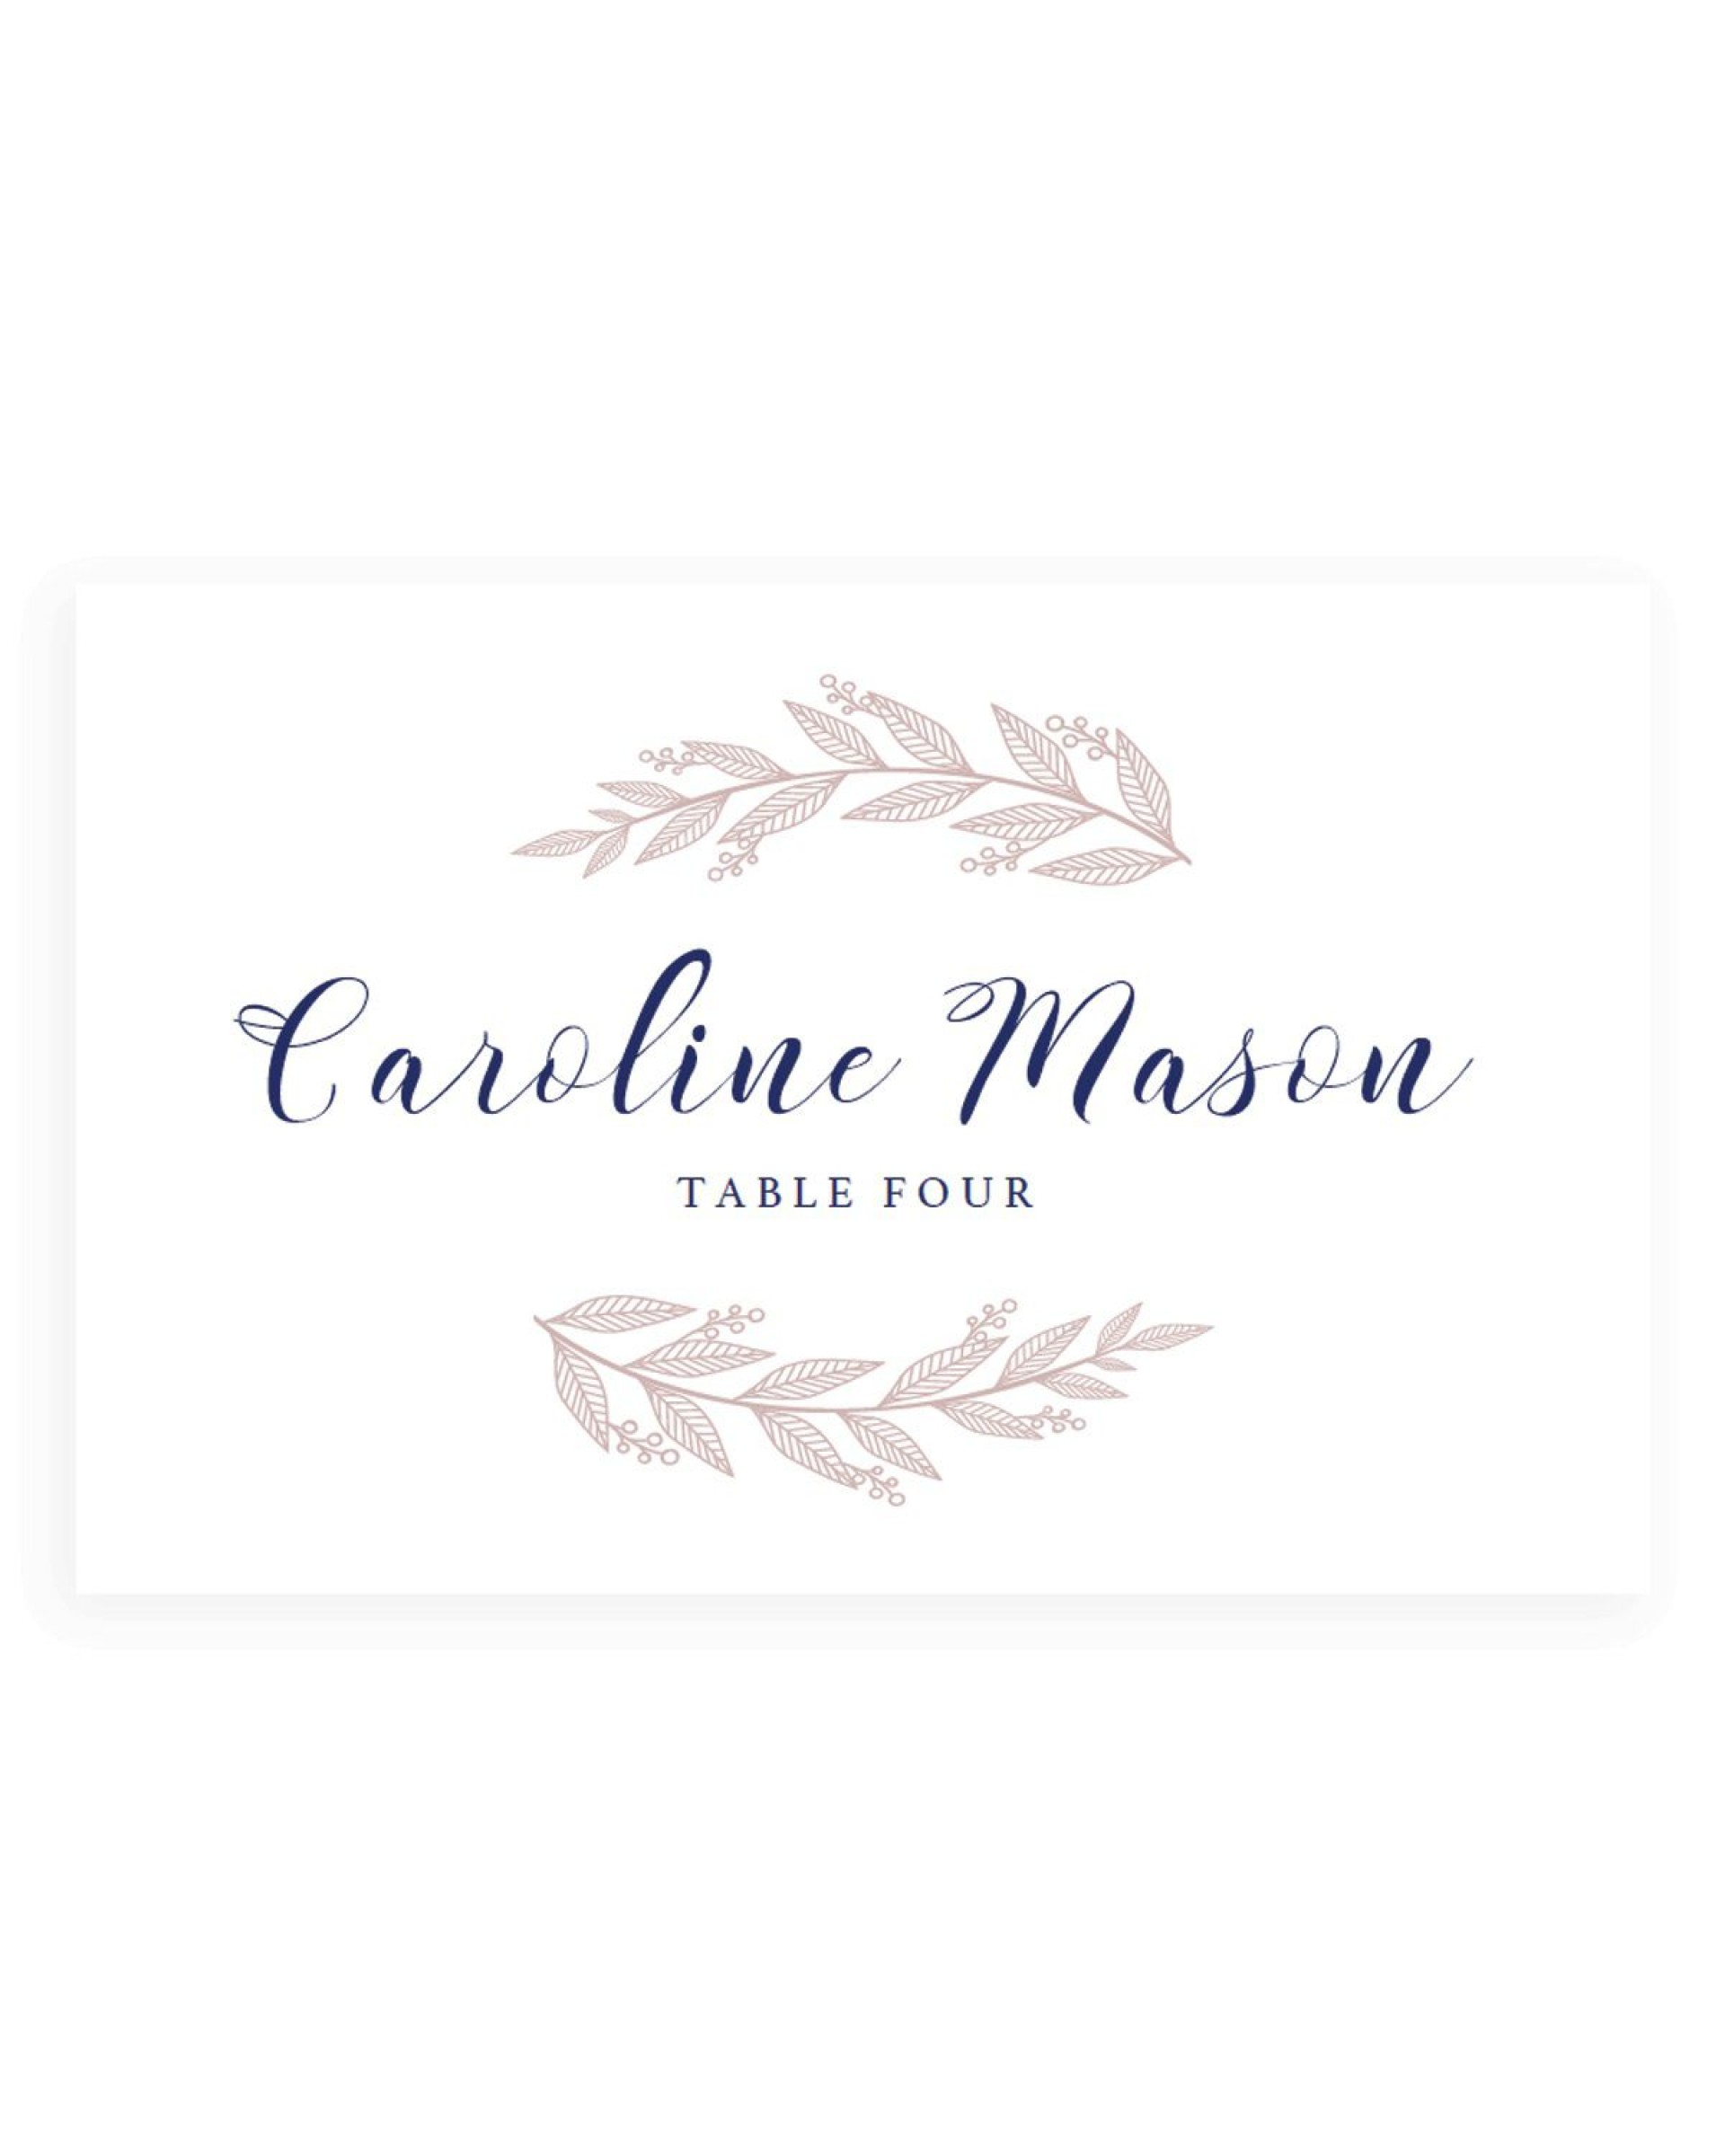 005 Fantastic Wedding Name Card Template Example  Free Download Design Sticker Format1920